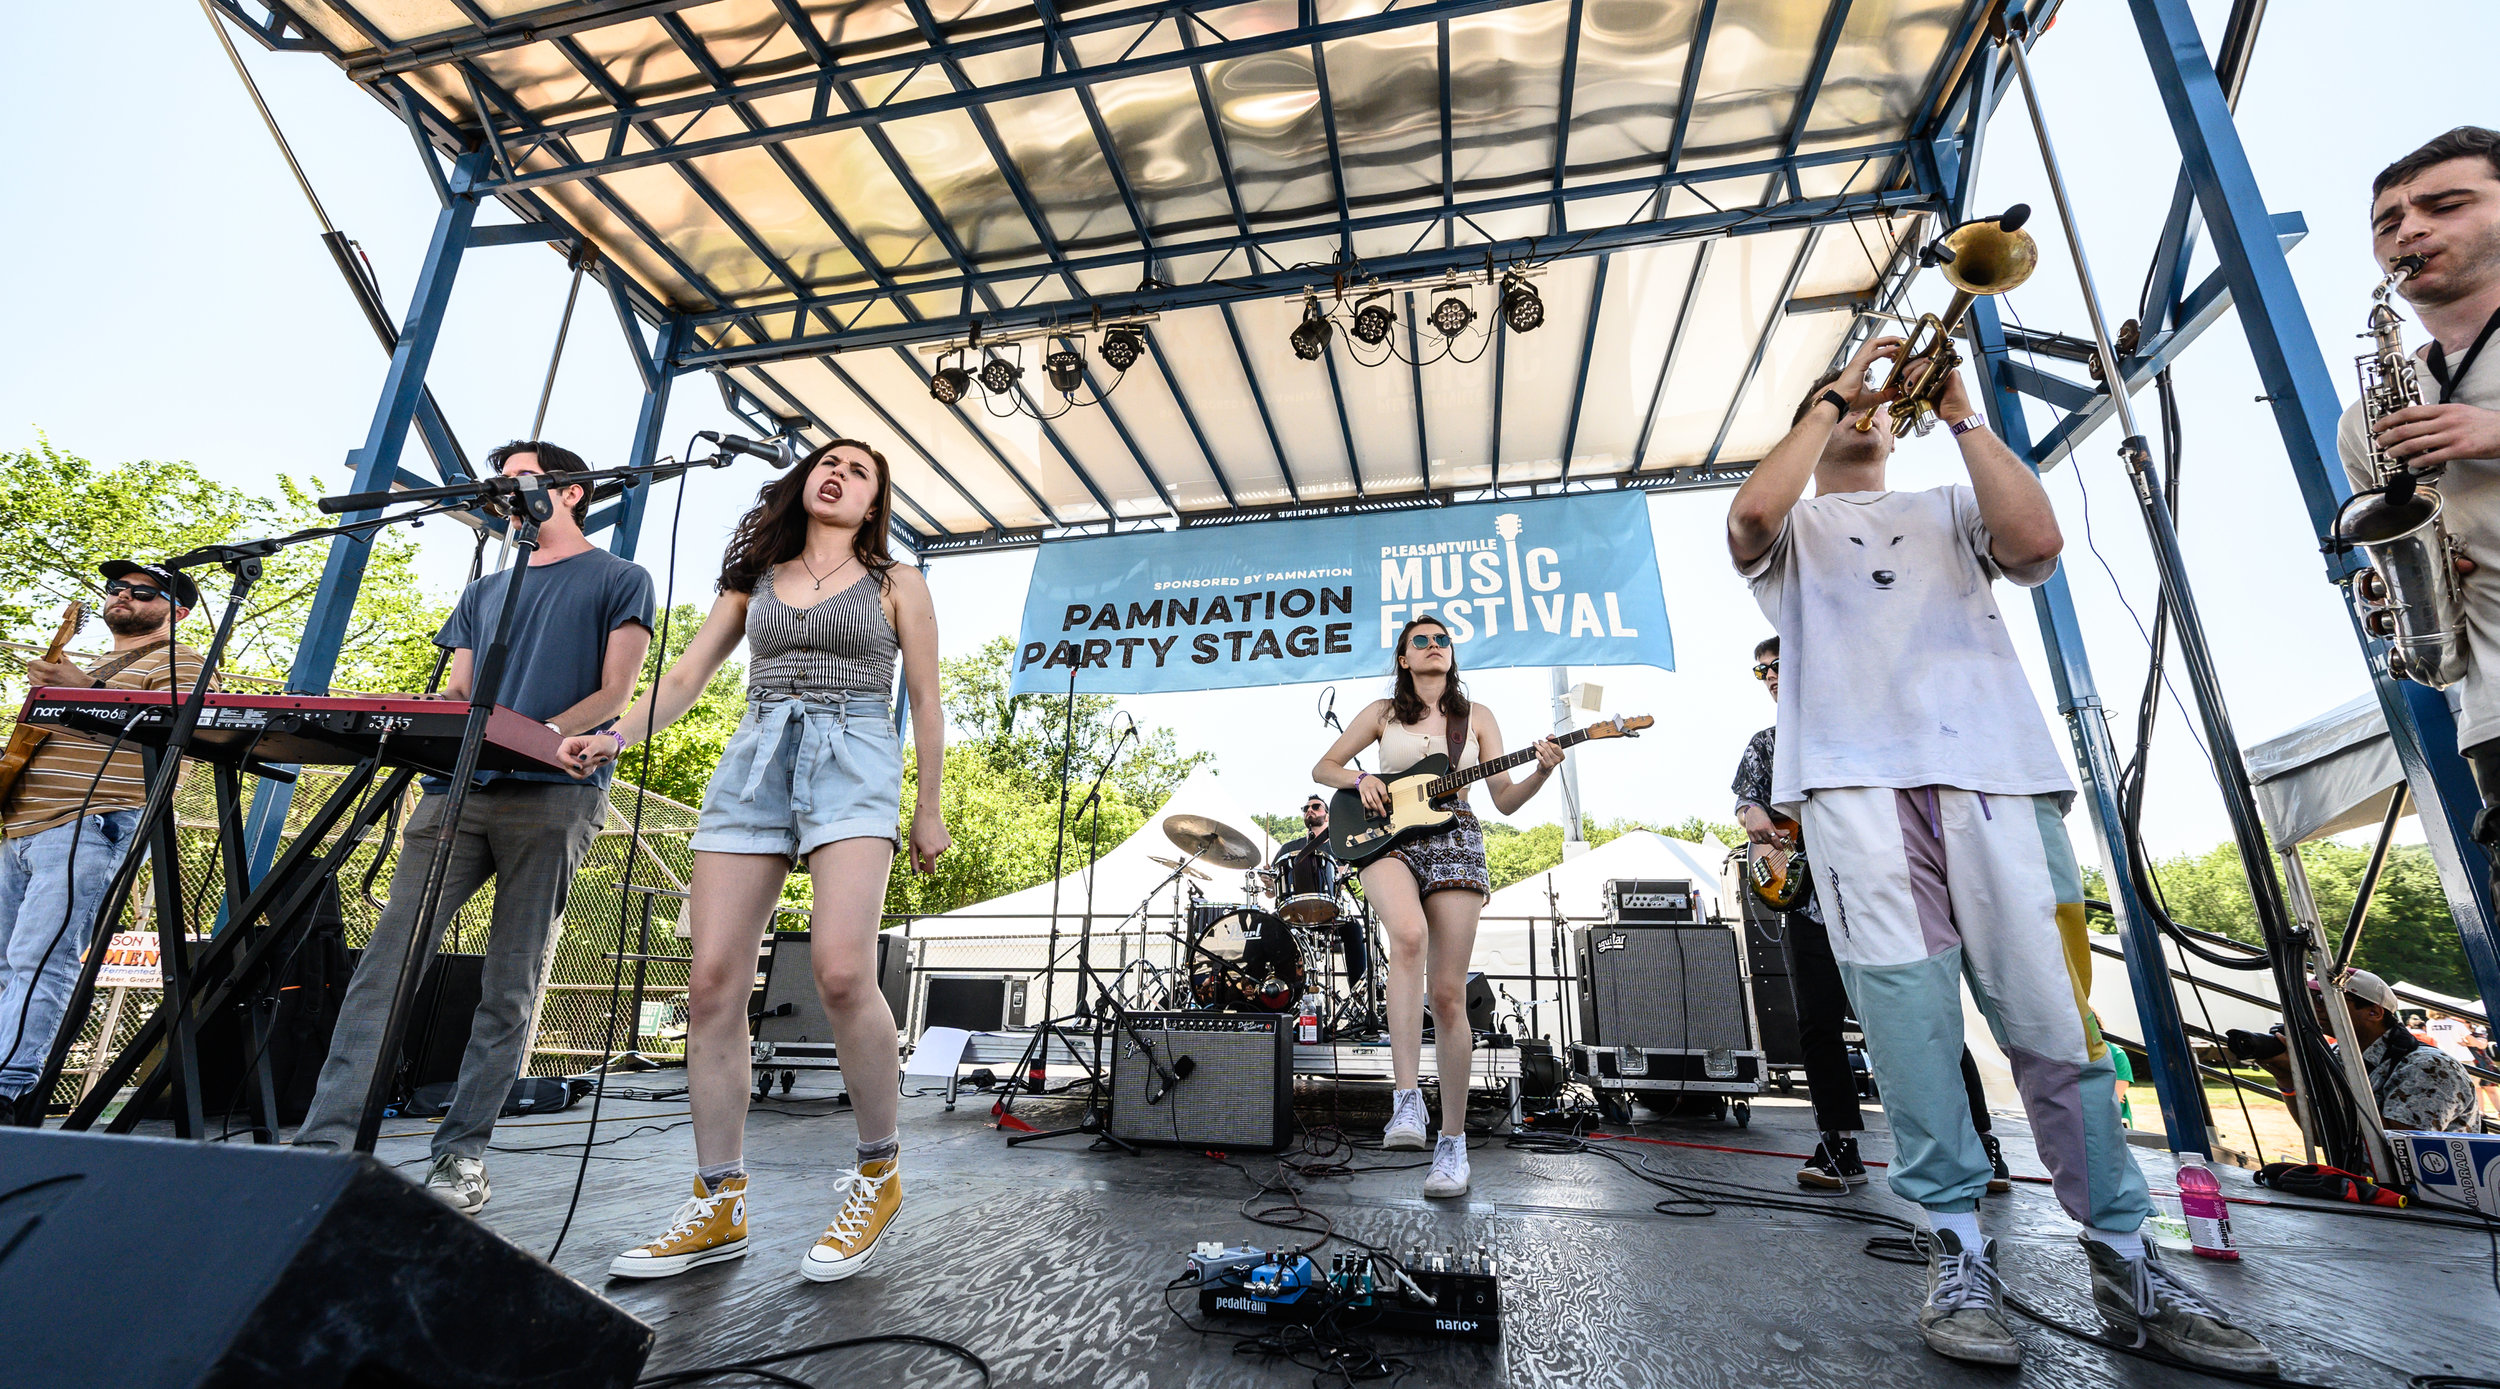 Melt heating up the Party Stage © 2019 Lynda Shenkman